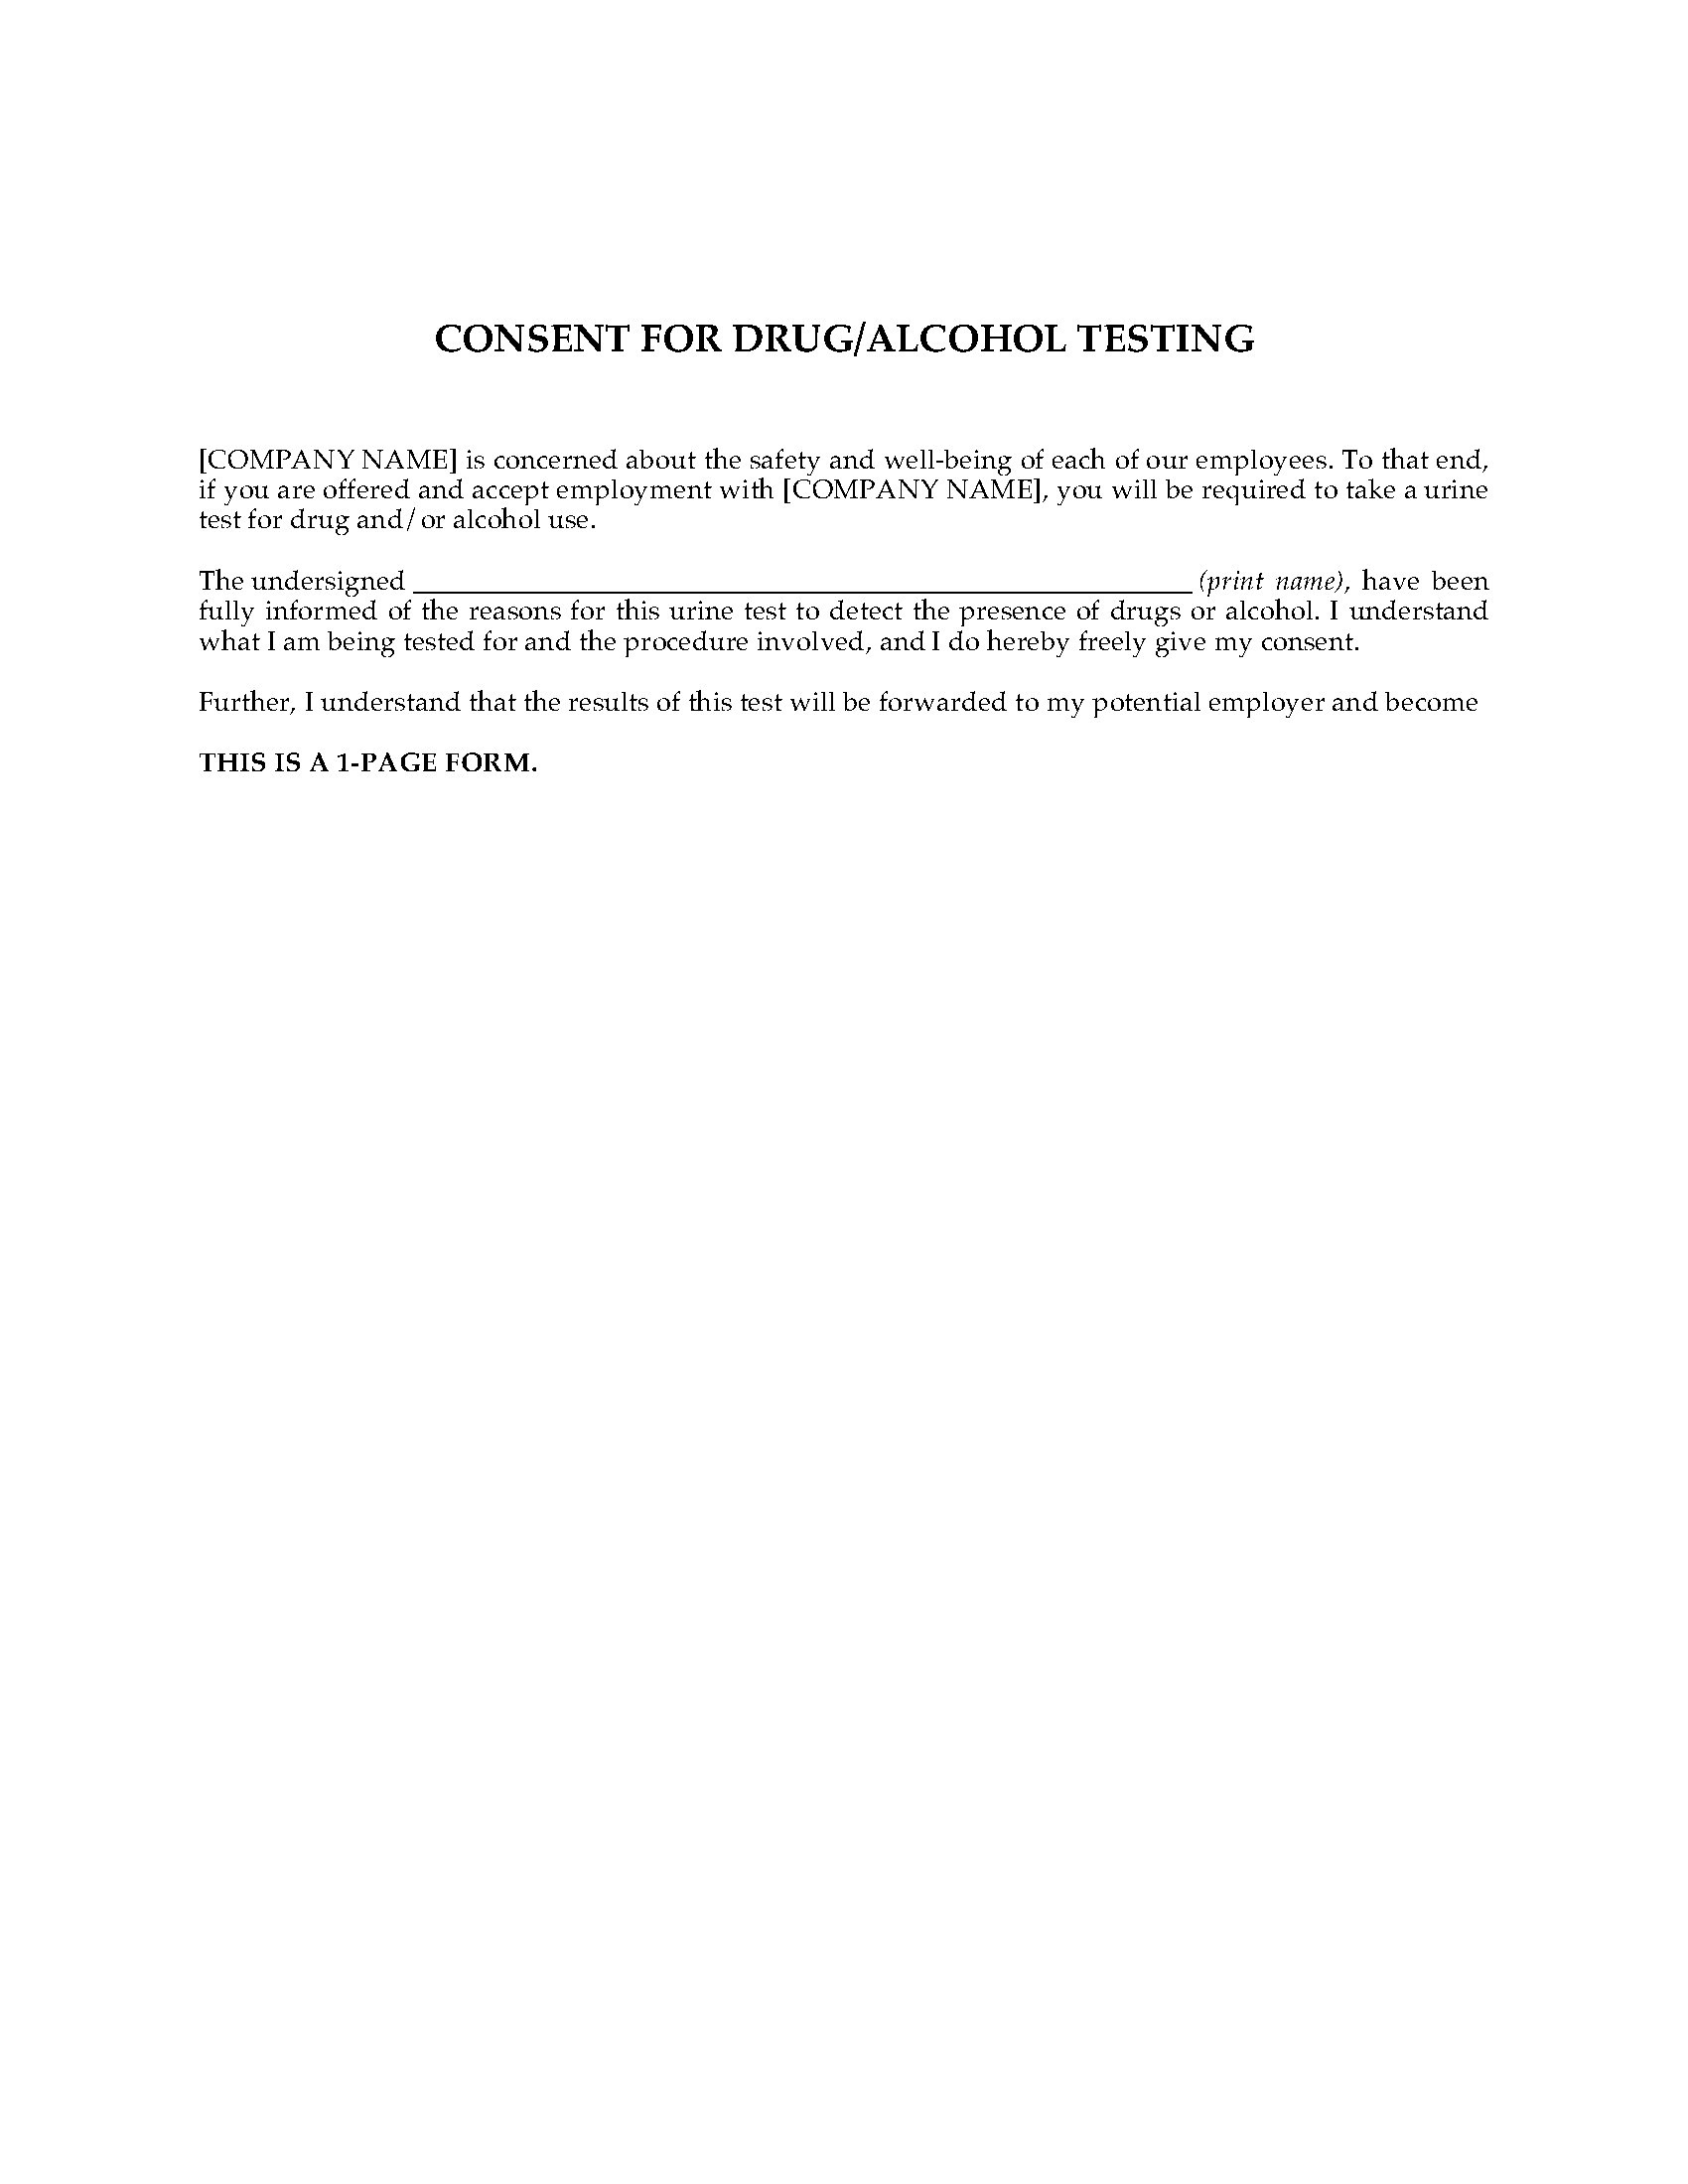 Employee Consent To Drug Alcohol Testing Legal Forms And